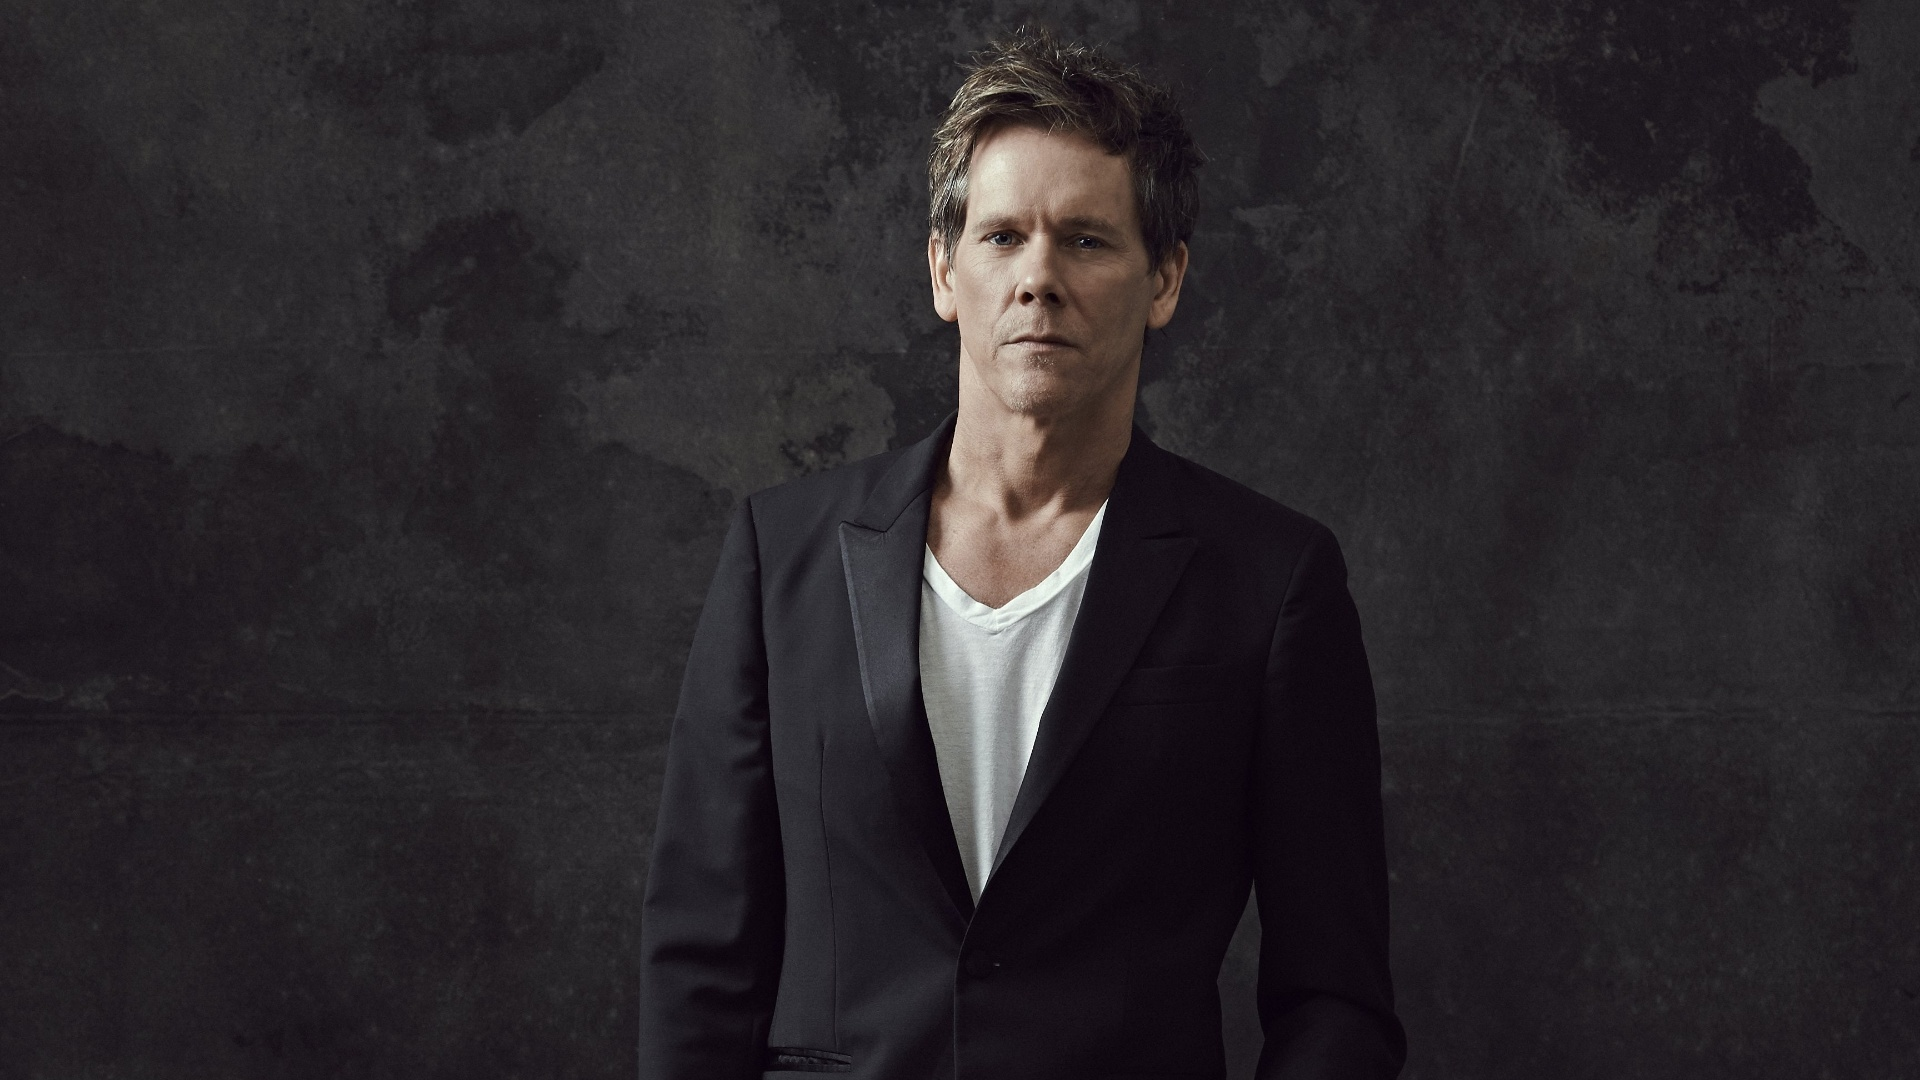 1920x1080 - Kevin Bacon Wallpapers 33